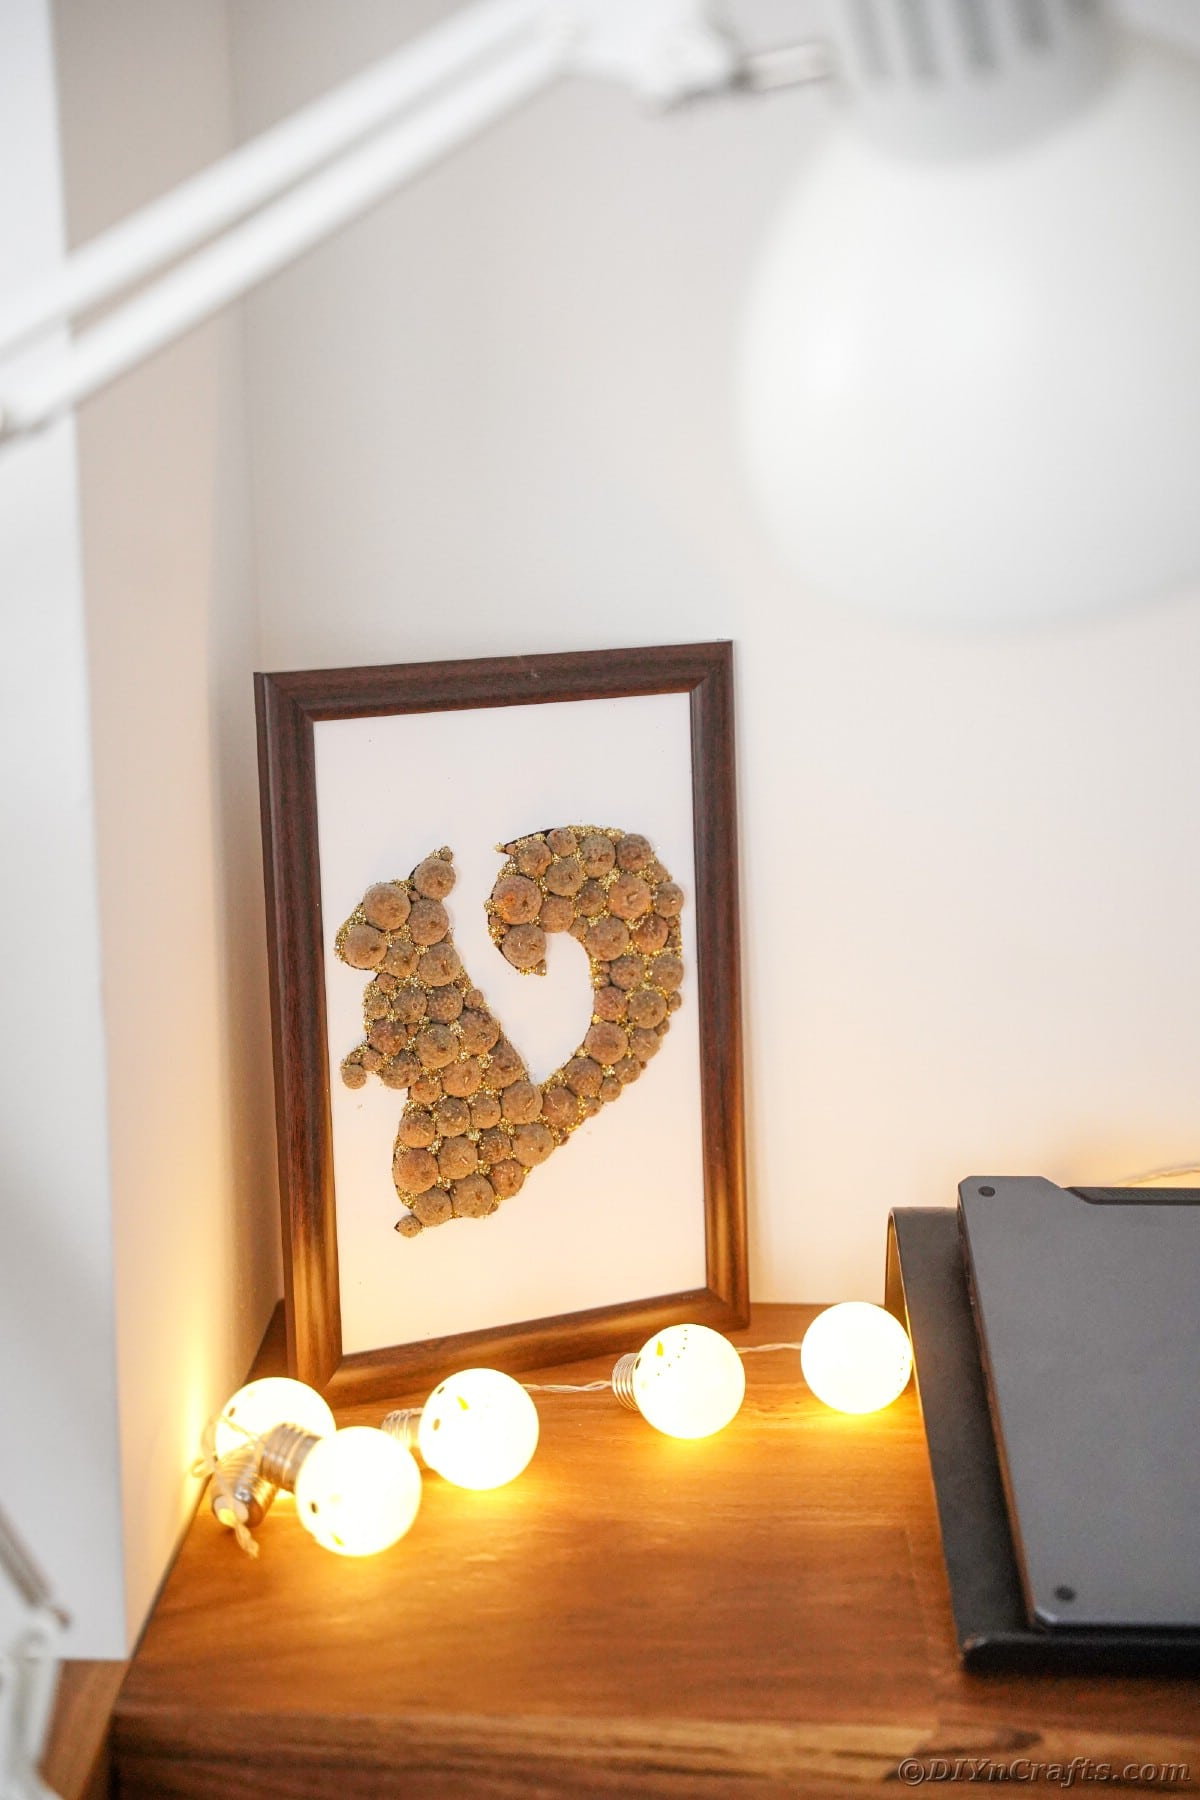 Acorn cap squirrel framed and sitting on table with string of bulb lights